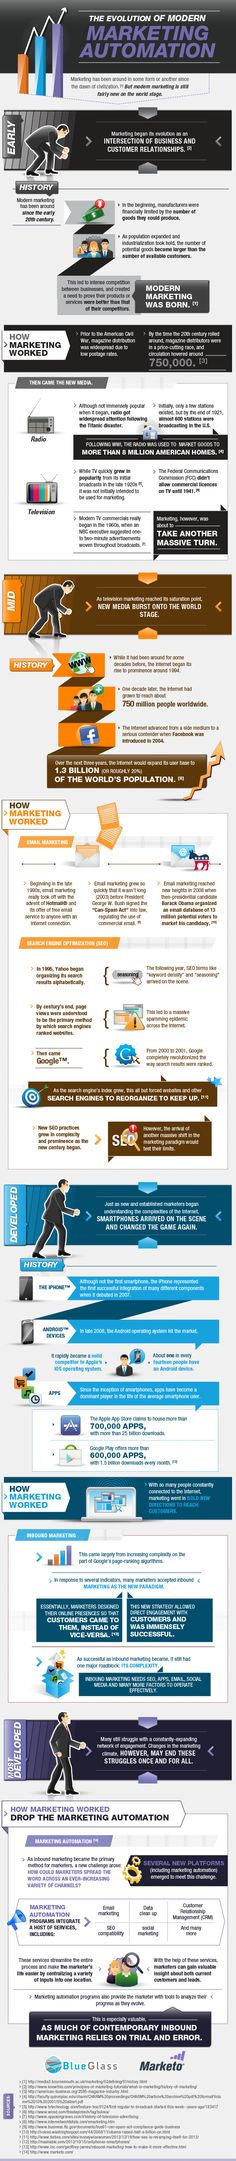 How the Evolution of Modern Marketing Is Changing B2B #Marketing [Infographic] #IMU @Hubspot